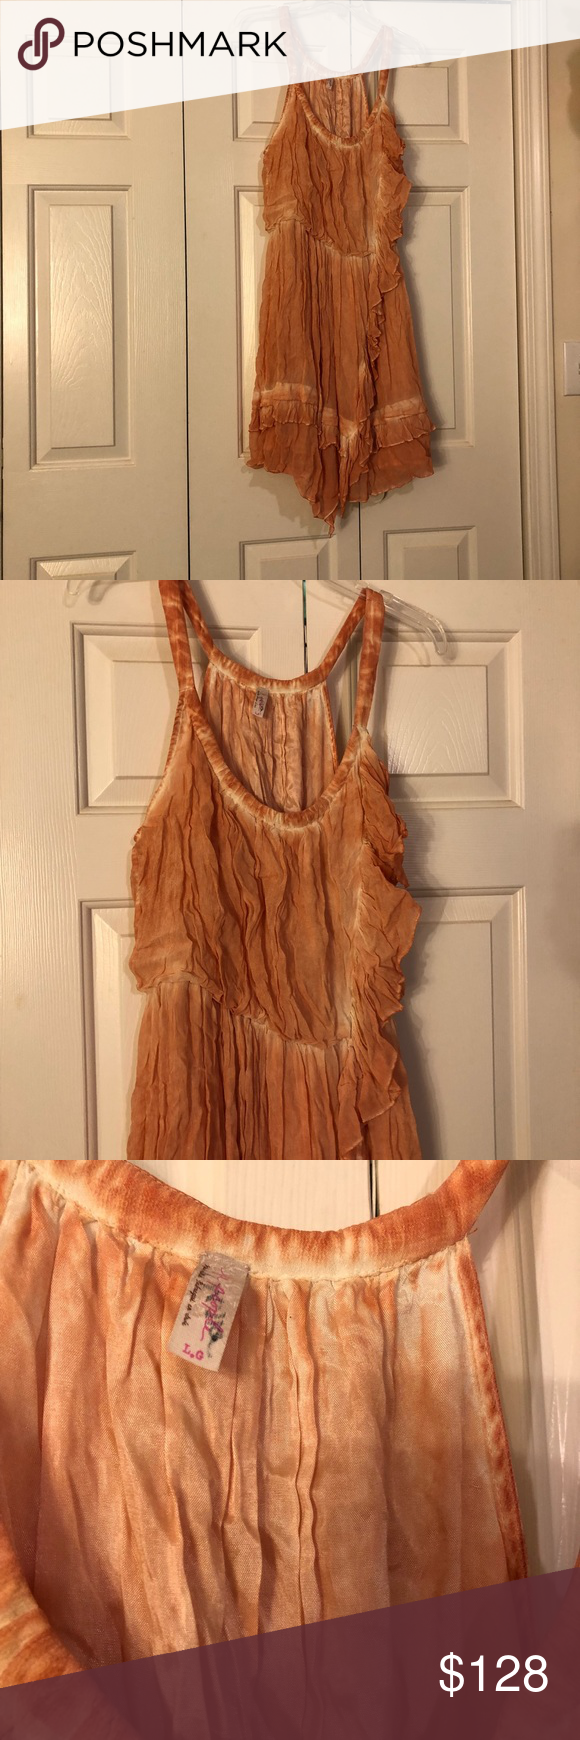 FREE PEOPLE SUN DRESS ONLY WORN ONCE 😱😱😱😱😱😱 This dress is